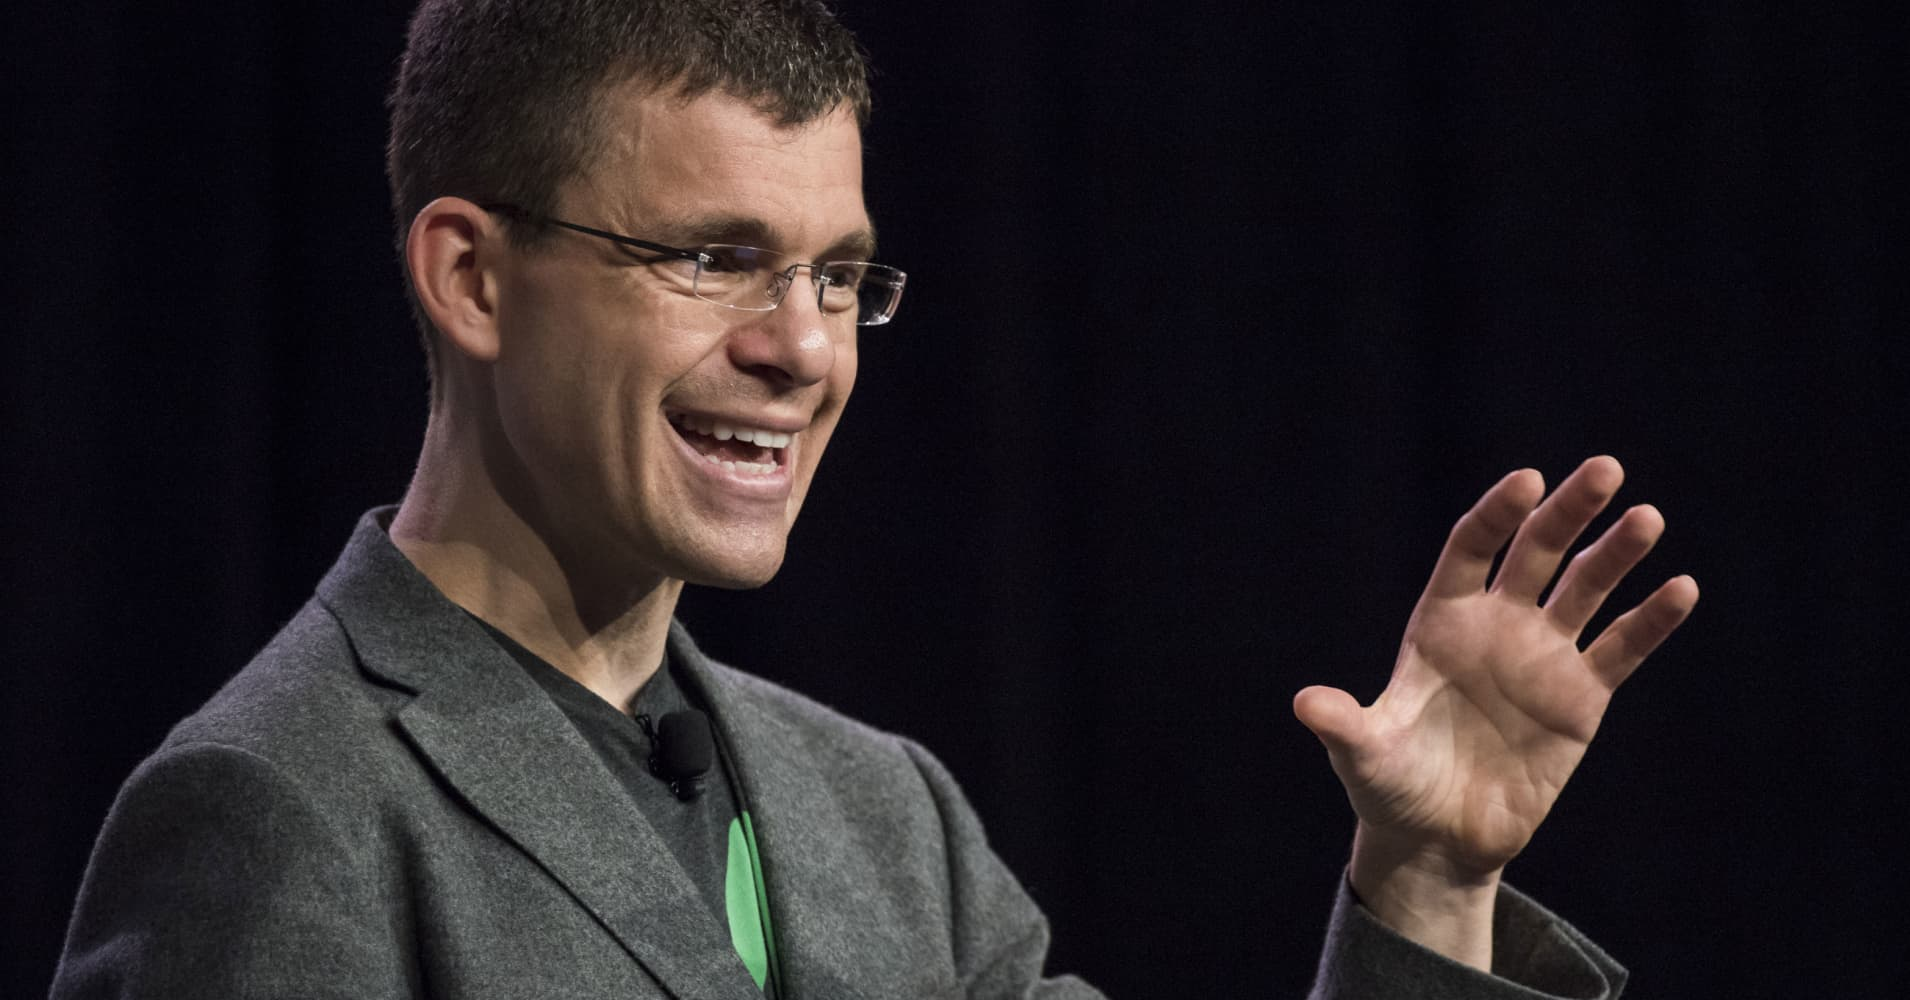 Max Levchin, co-founder of PayPal and Affirm